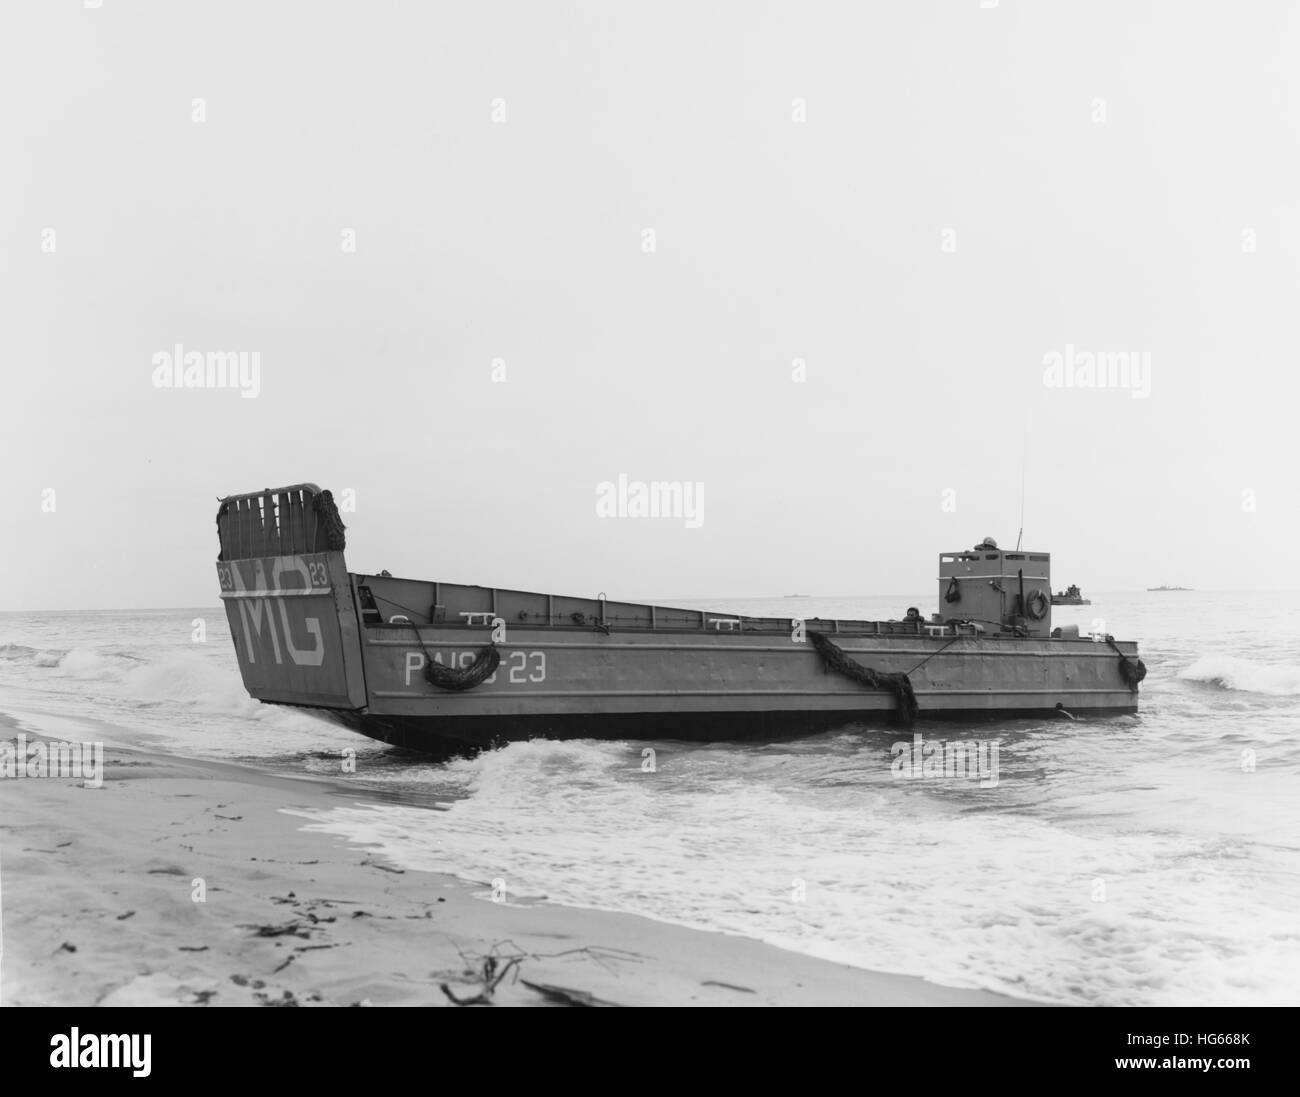 A landing craft beaches to unload troops during Operation Pony Express, 1961. - Stock Image